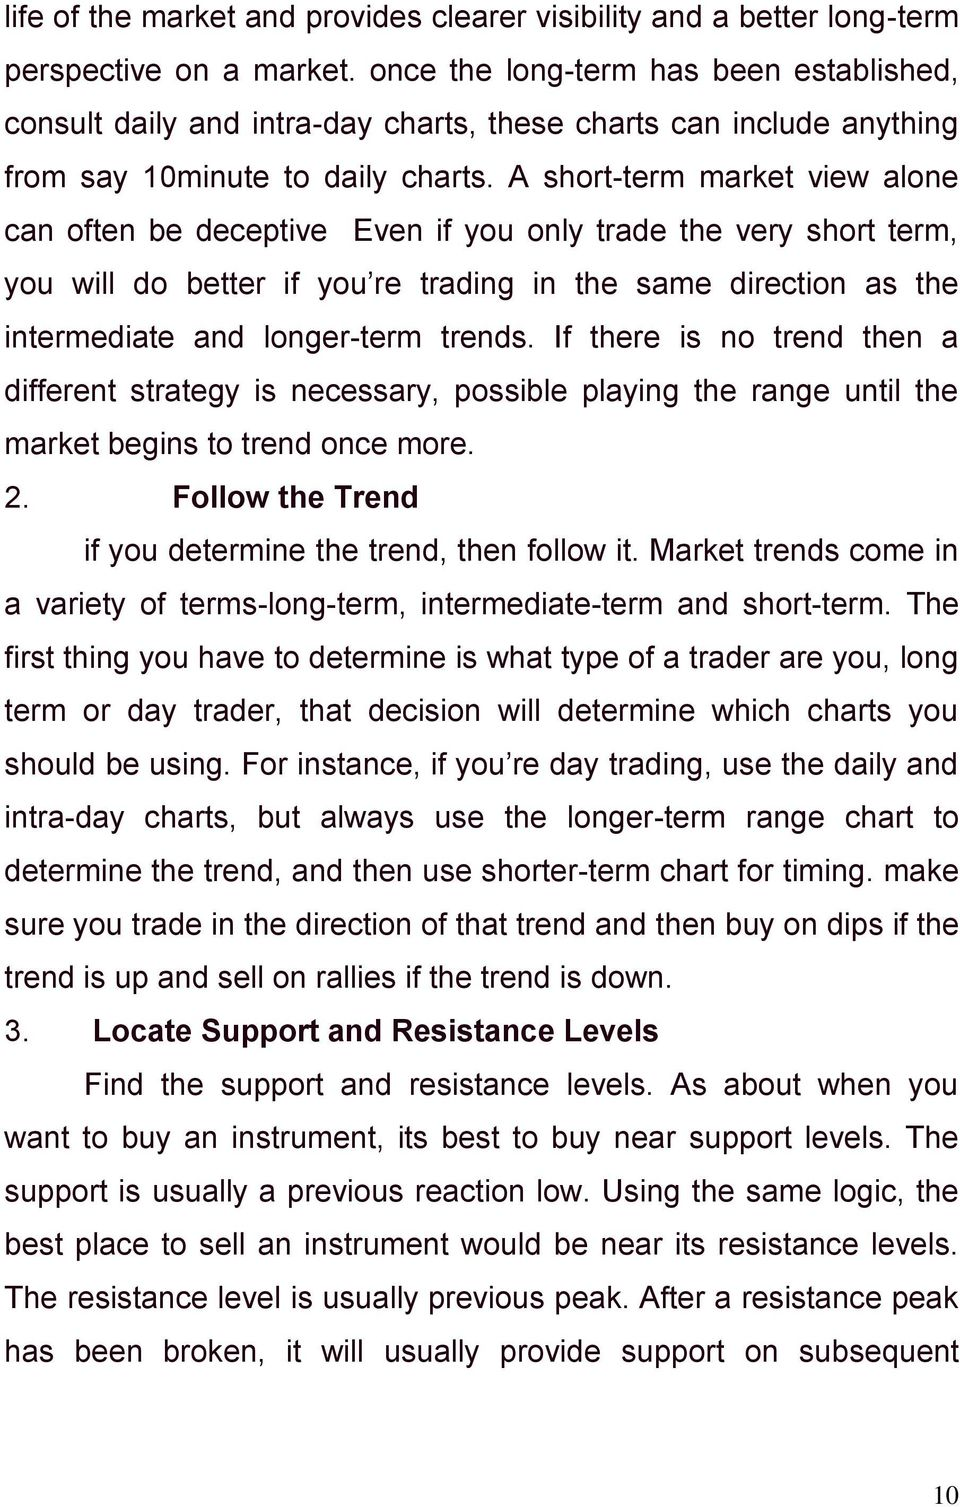 A short-term market view alone can often be deceptive Even if you only trade the very short term, you will do better if you re trading in the same direction as the intermediate and longer-term trends.